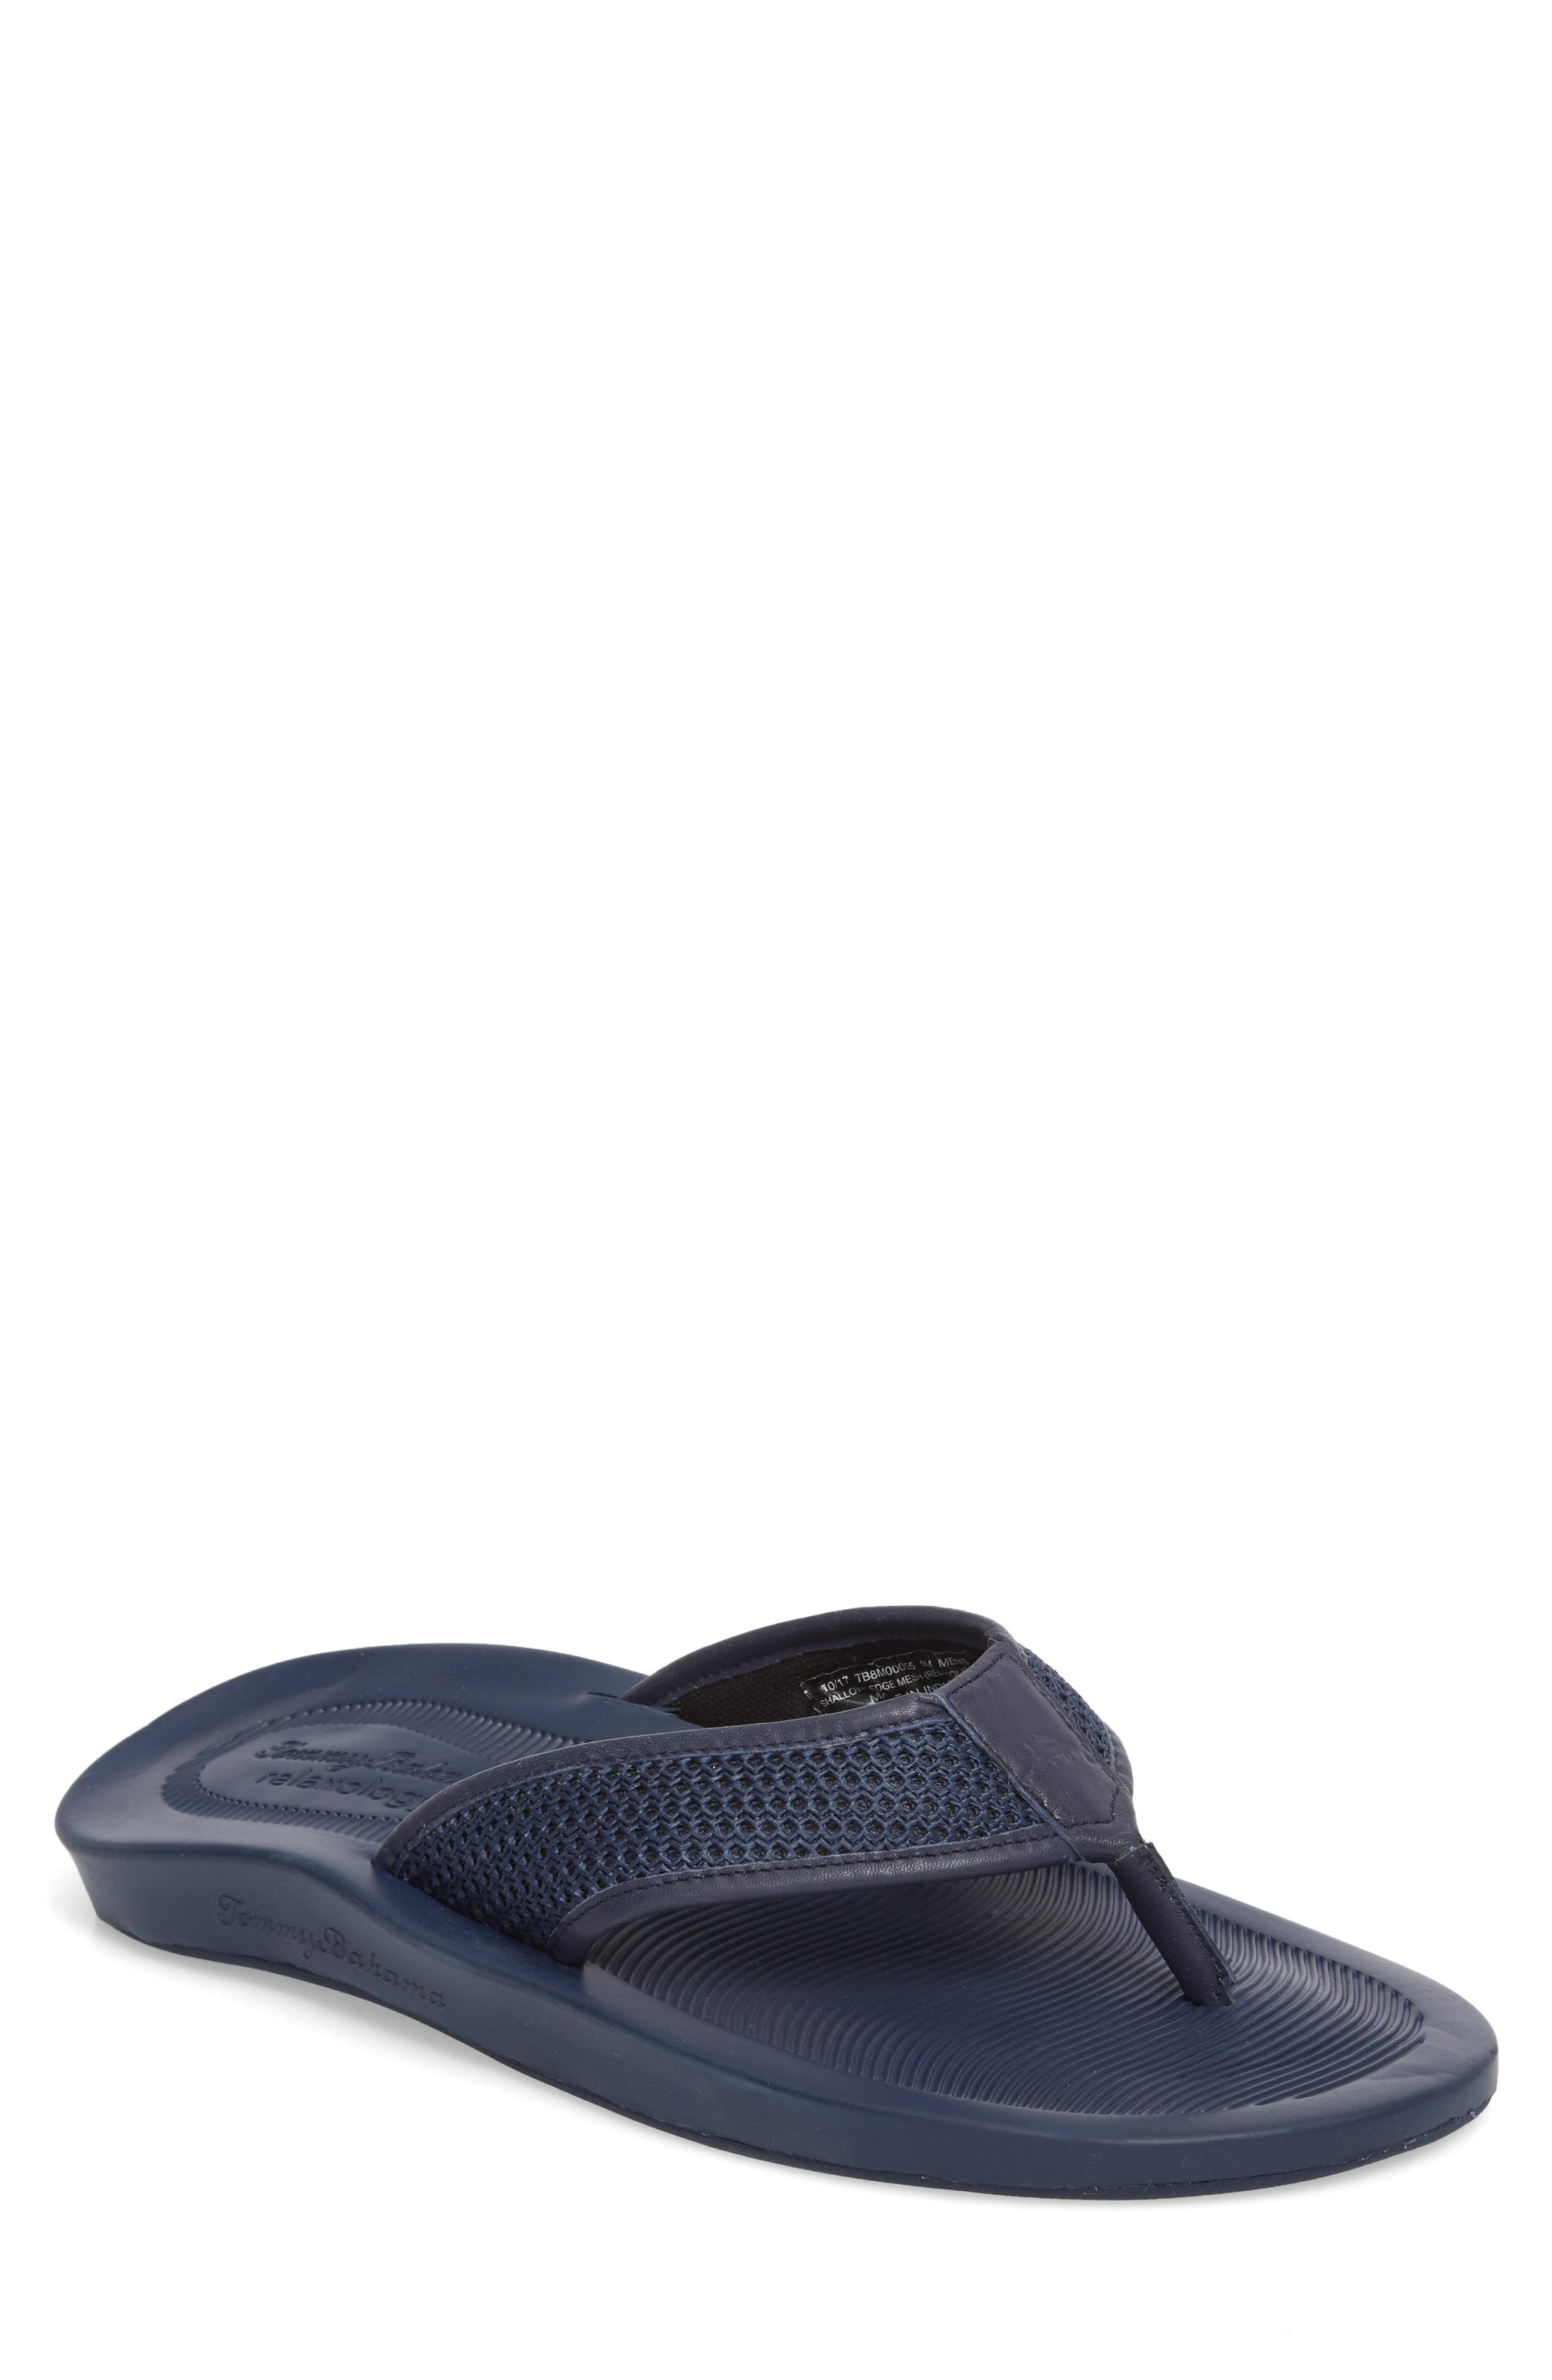 Shallows Edge Mesh Flip Flop,                             Main thumbnail 1, color,                             Navy Mesh/ Leather